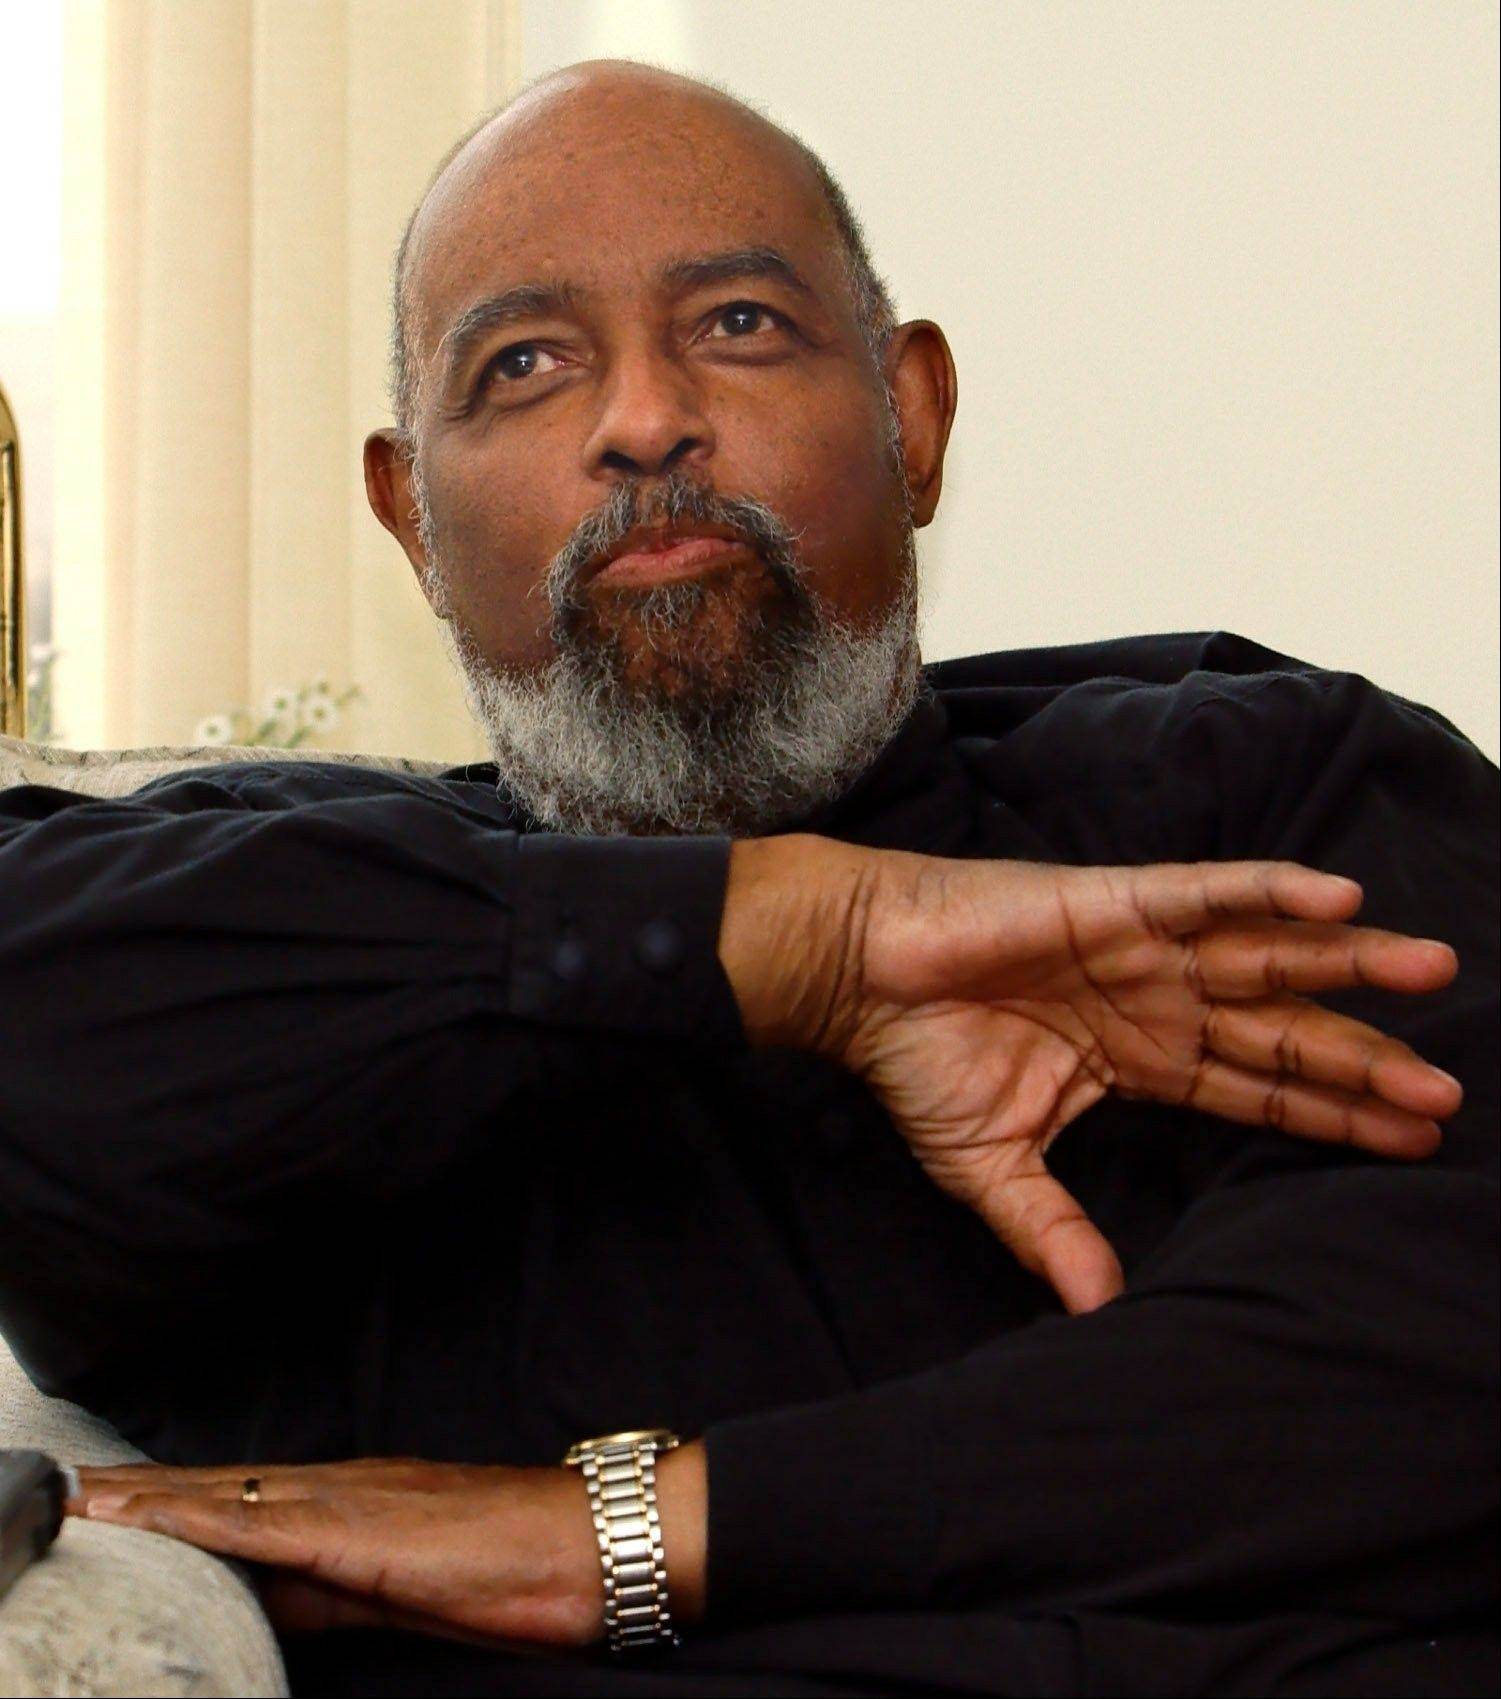 In this May 9, 2002, file photo, James DePreist, talks about his conducting career as he sits in his high rise apartment overlooking downtown Portland. One of the early African-American conductors of a major orchestra and National Medal of Arts winner James DePreist has died at age 76. His manager, Jason Bagdade, says DePreist died at home Friday, Feb. 8. 2013, in Scottsdale, Ariz.